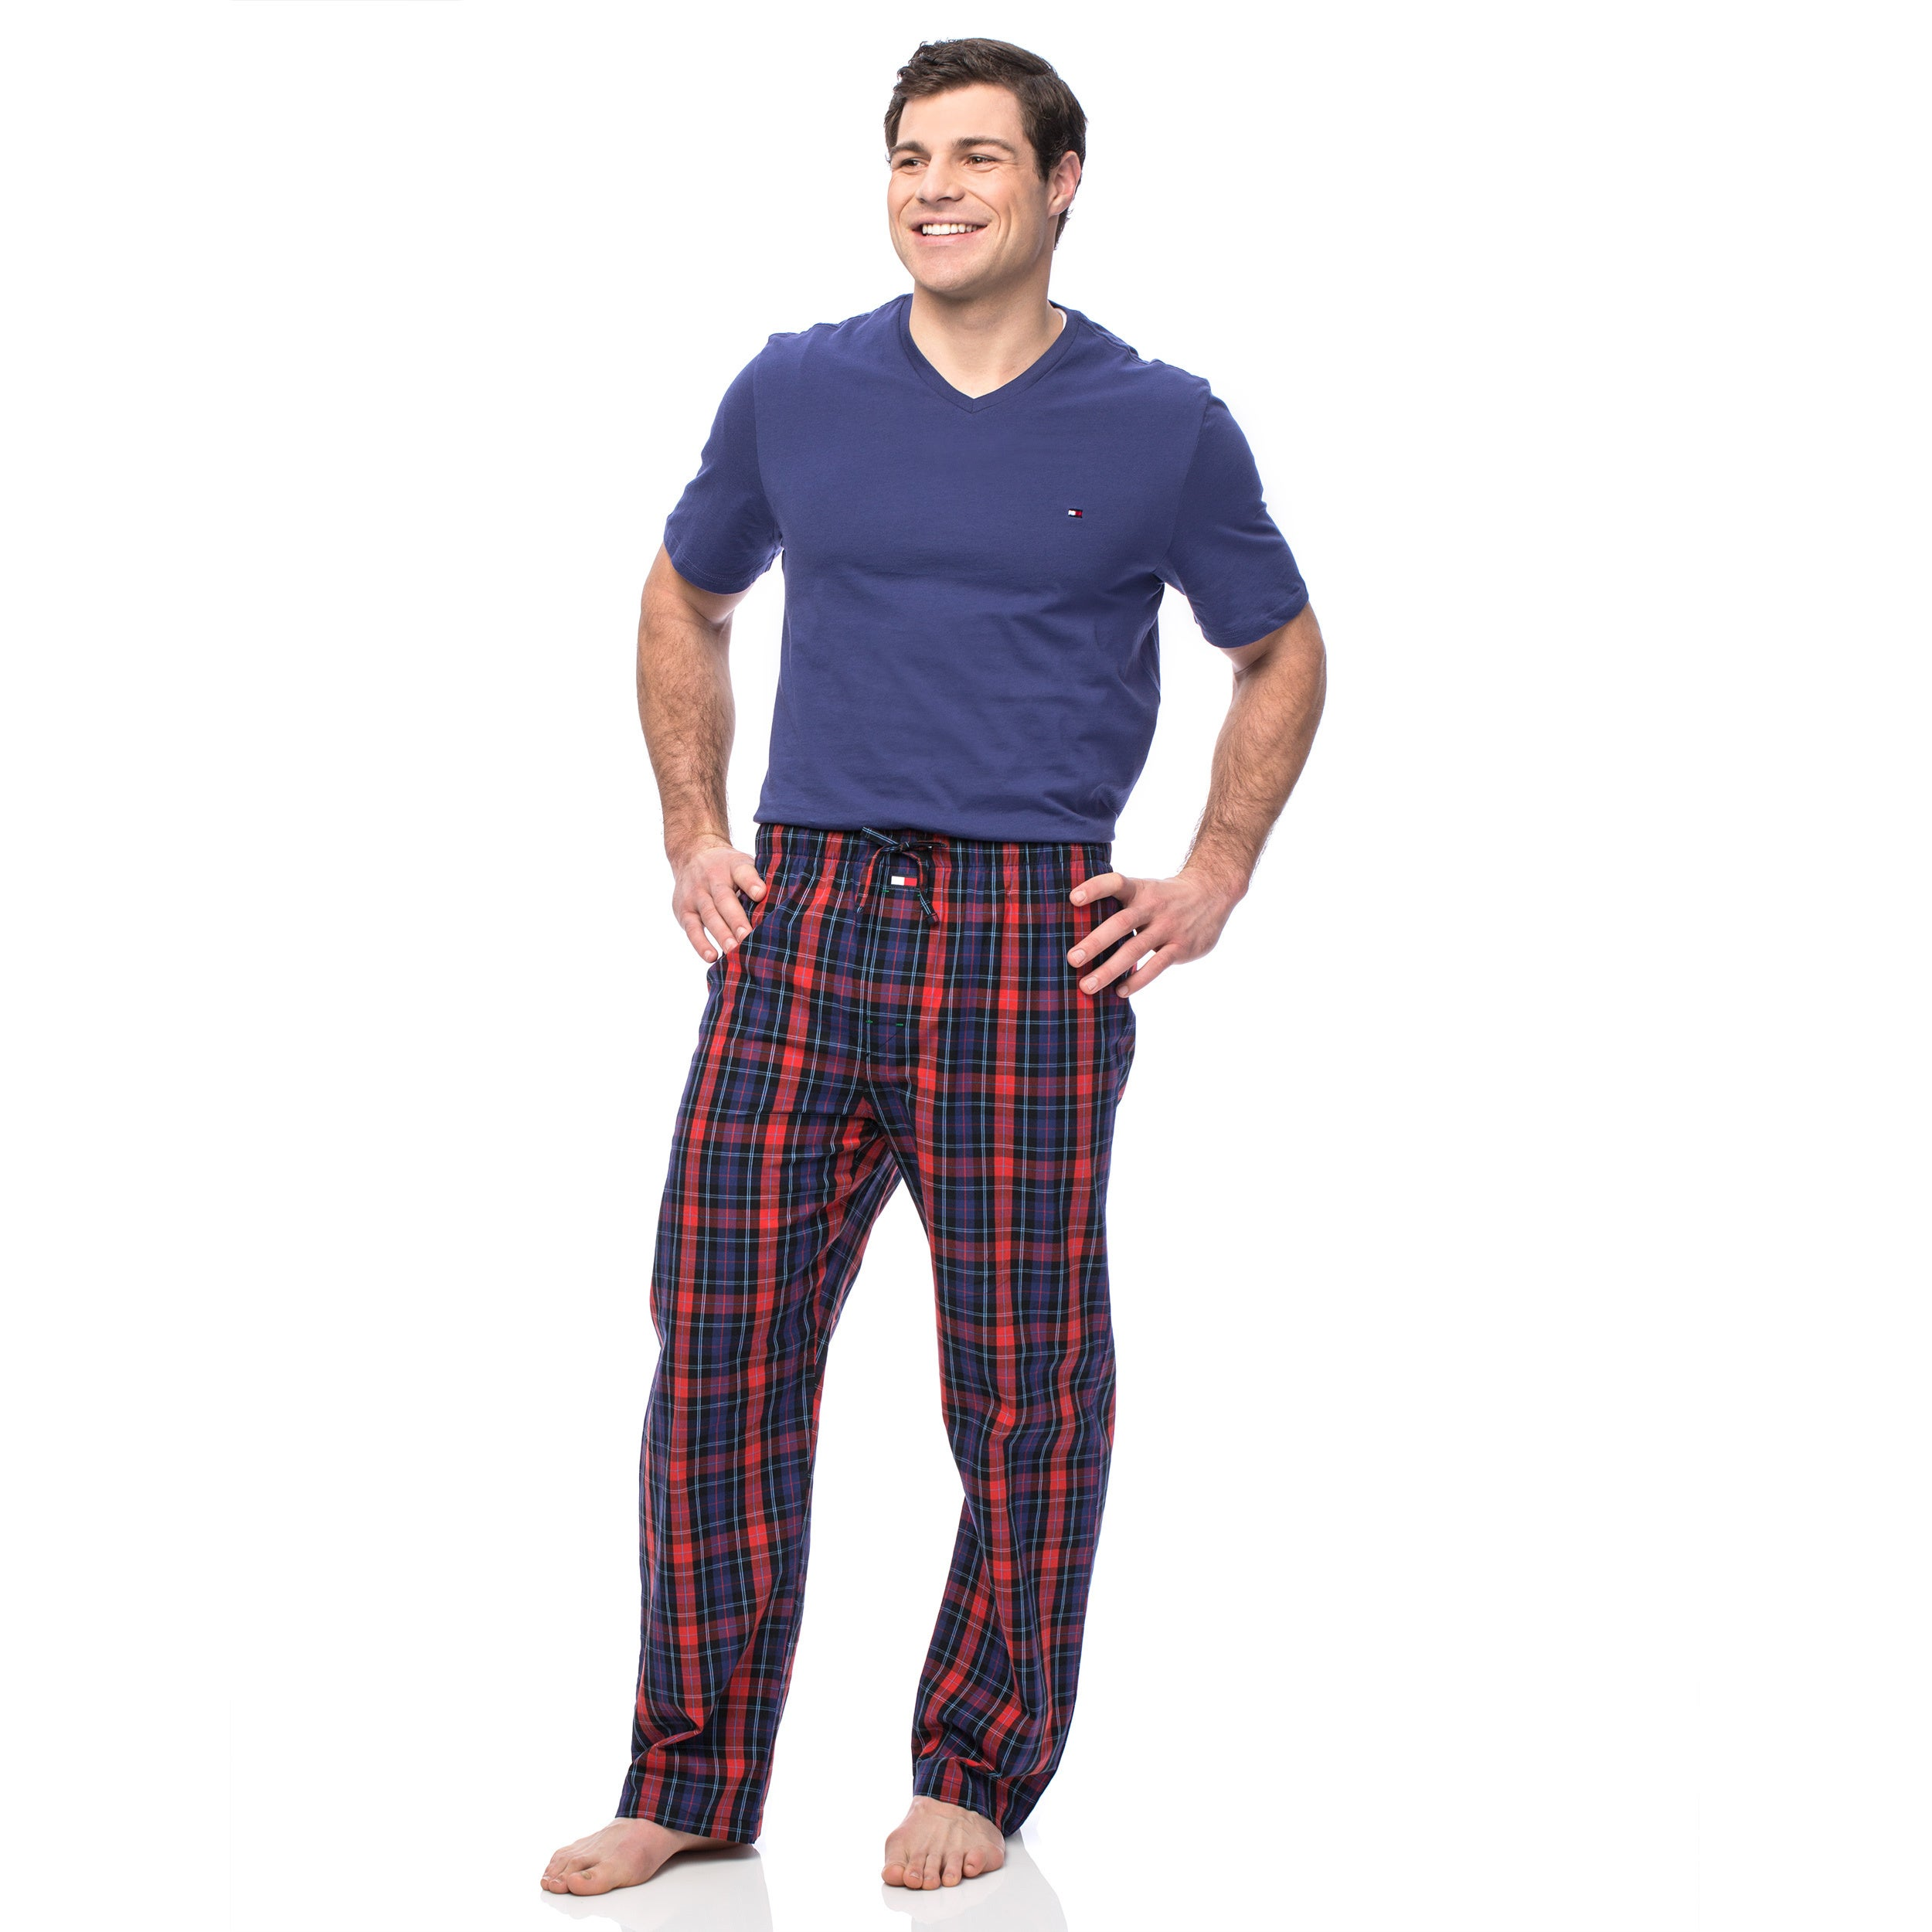 b8b62a76268 Shop Tommy Hilfiger Men s Navy and Red Short Sleeve Pajama Box Set - Free  Shipping On Orders Over  45 - Overstock - 10168094